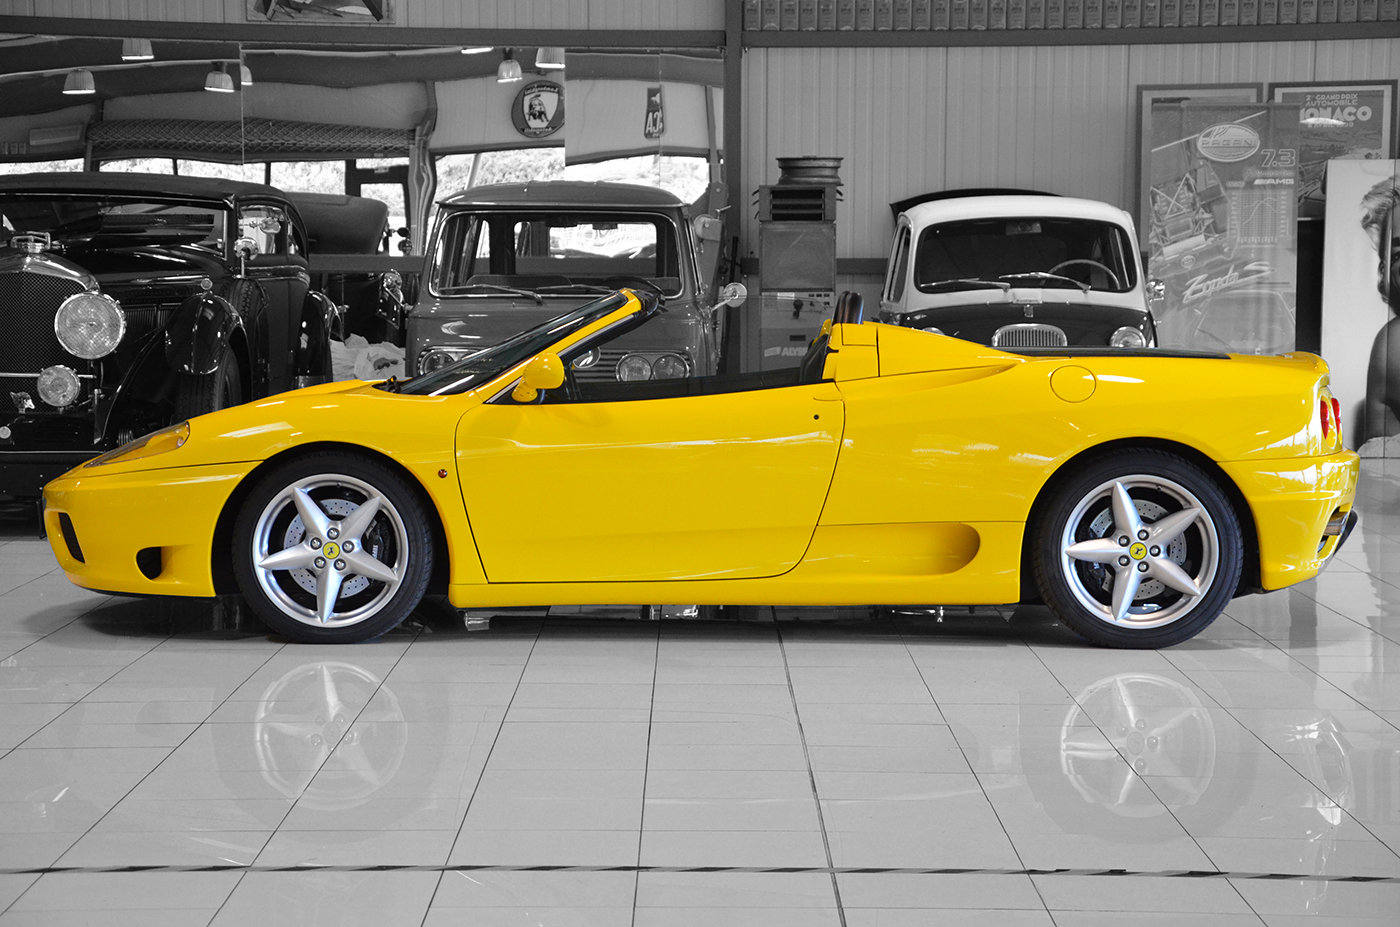 2001 - Ferrari 360 Spider Manual LHD Giallo Modena For Sale (picture 2 of 6)